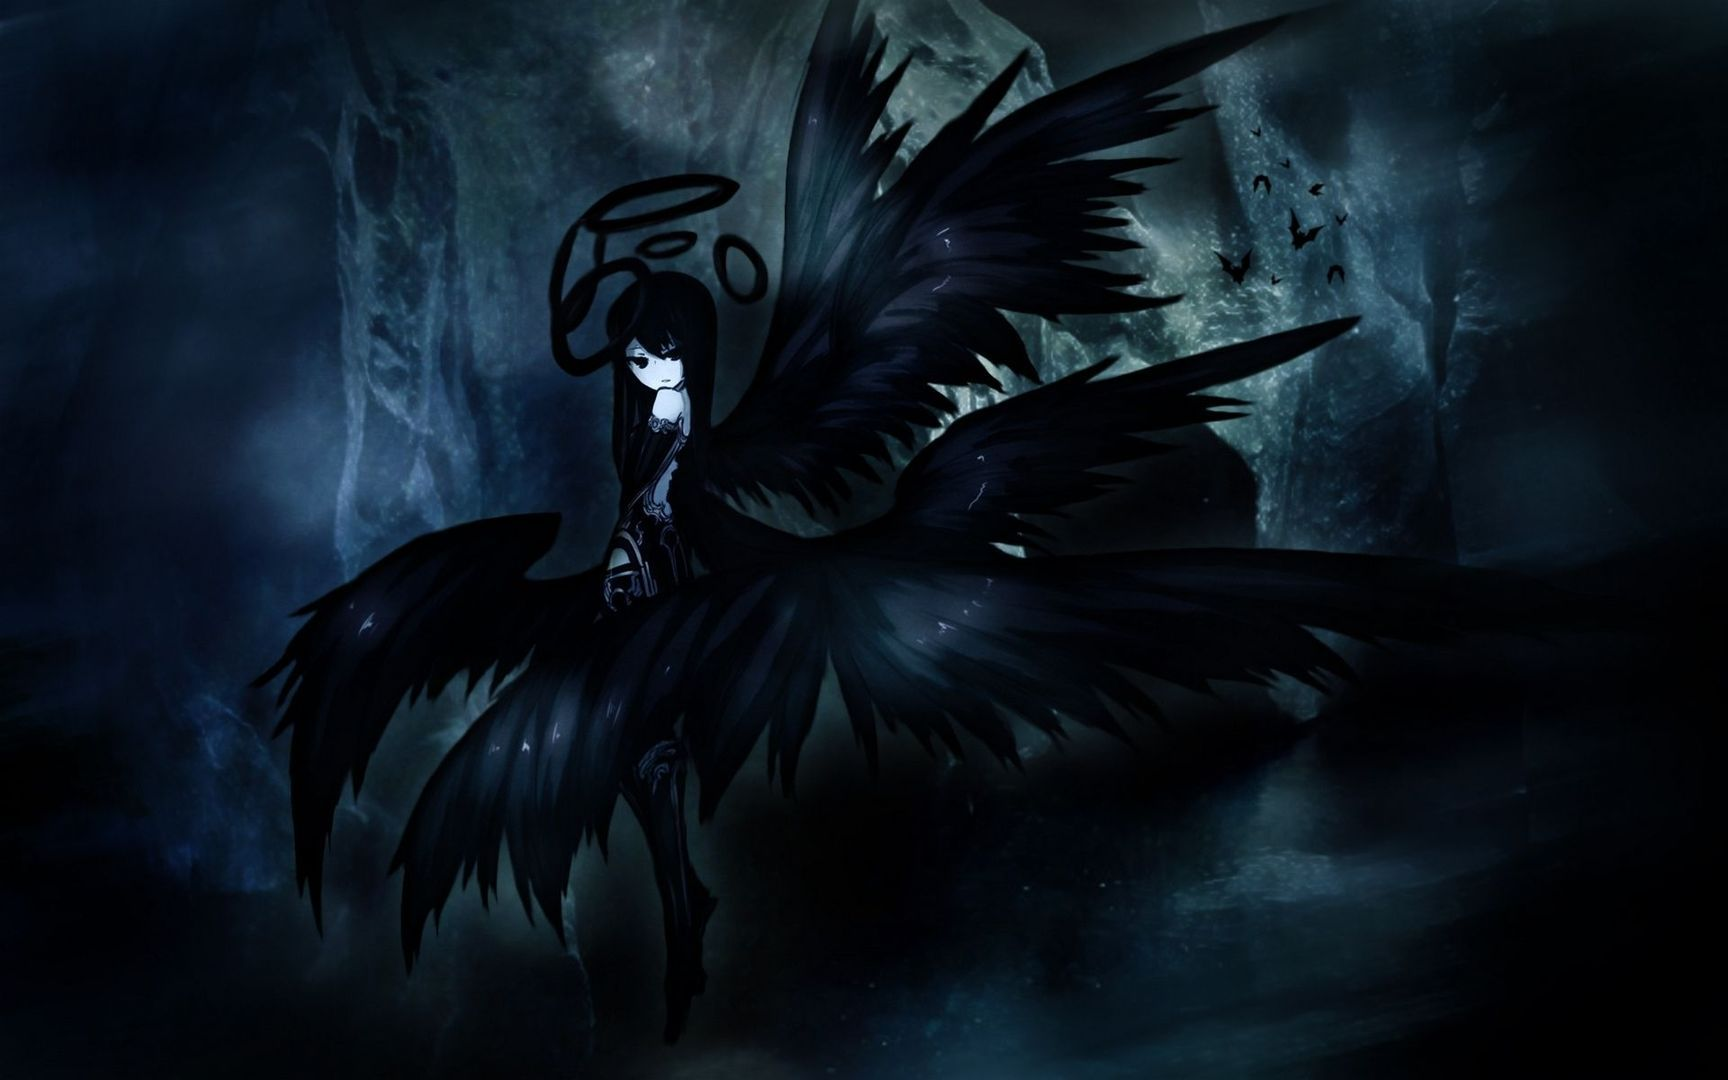 Dark Angel Wallpapers HD Android Apps on Google Play